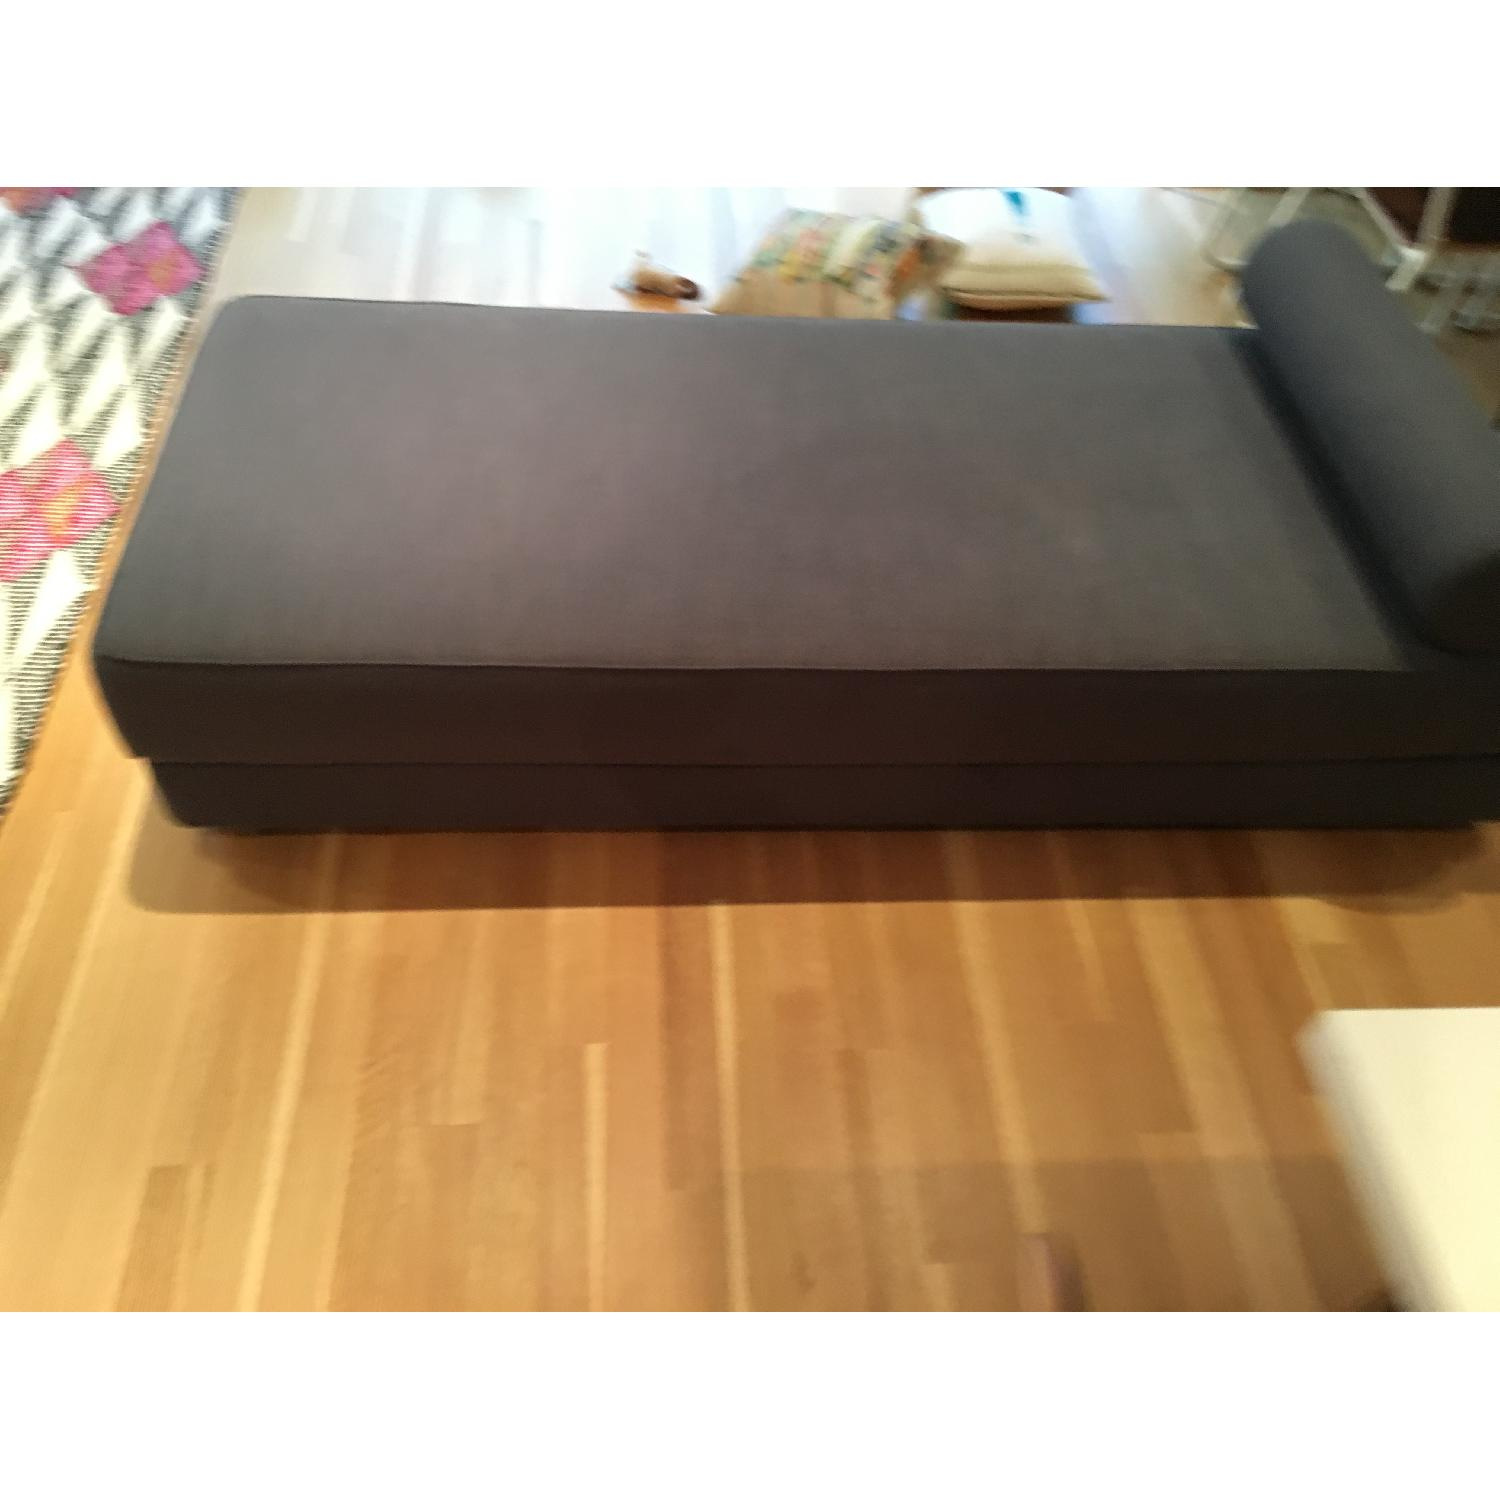 CB2 Lubi Sleeper Daybed - image-9